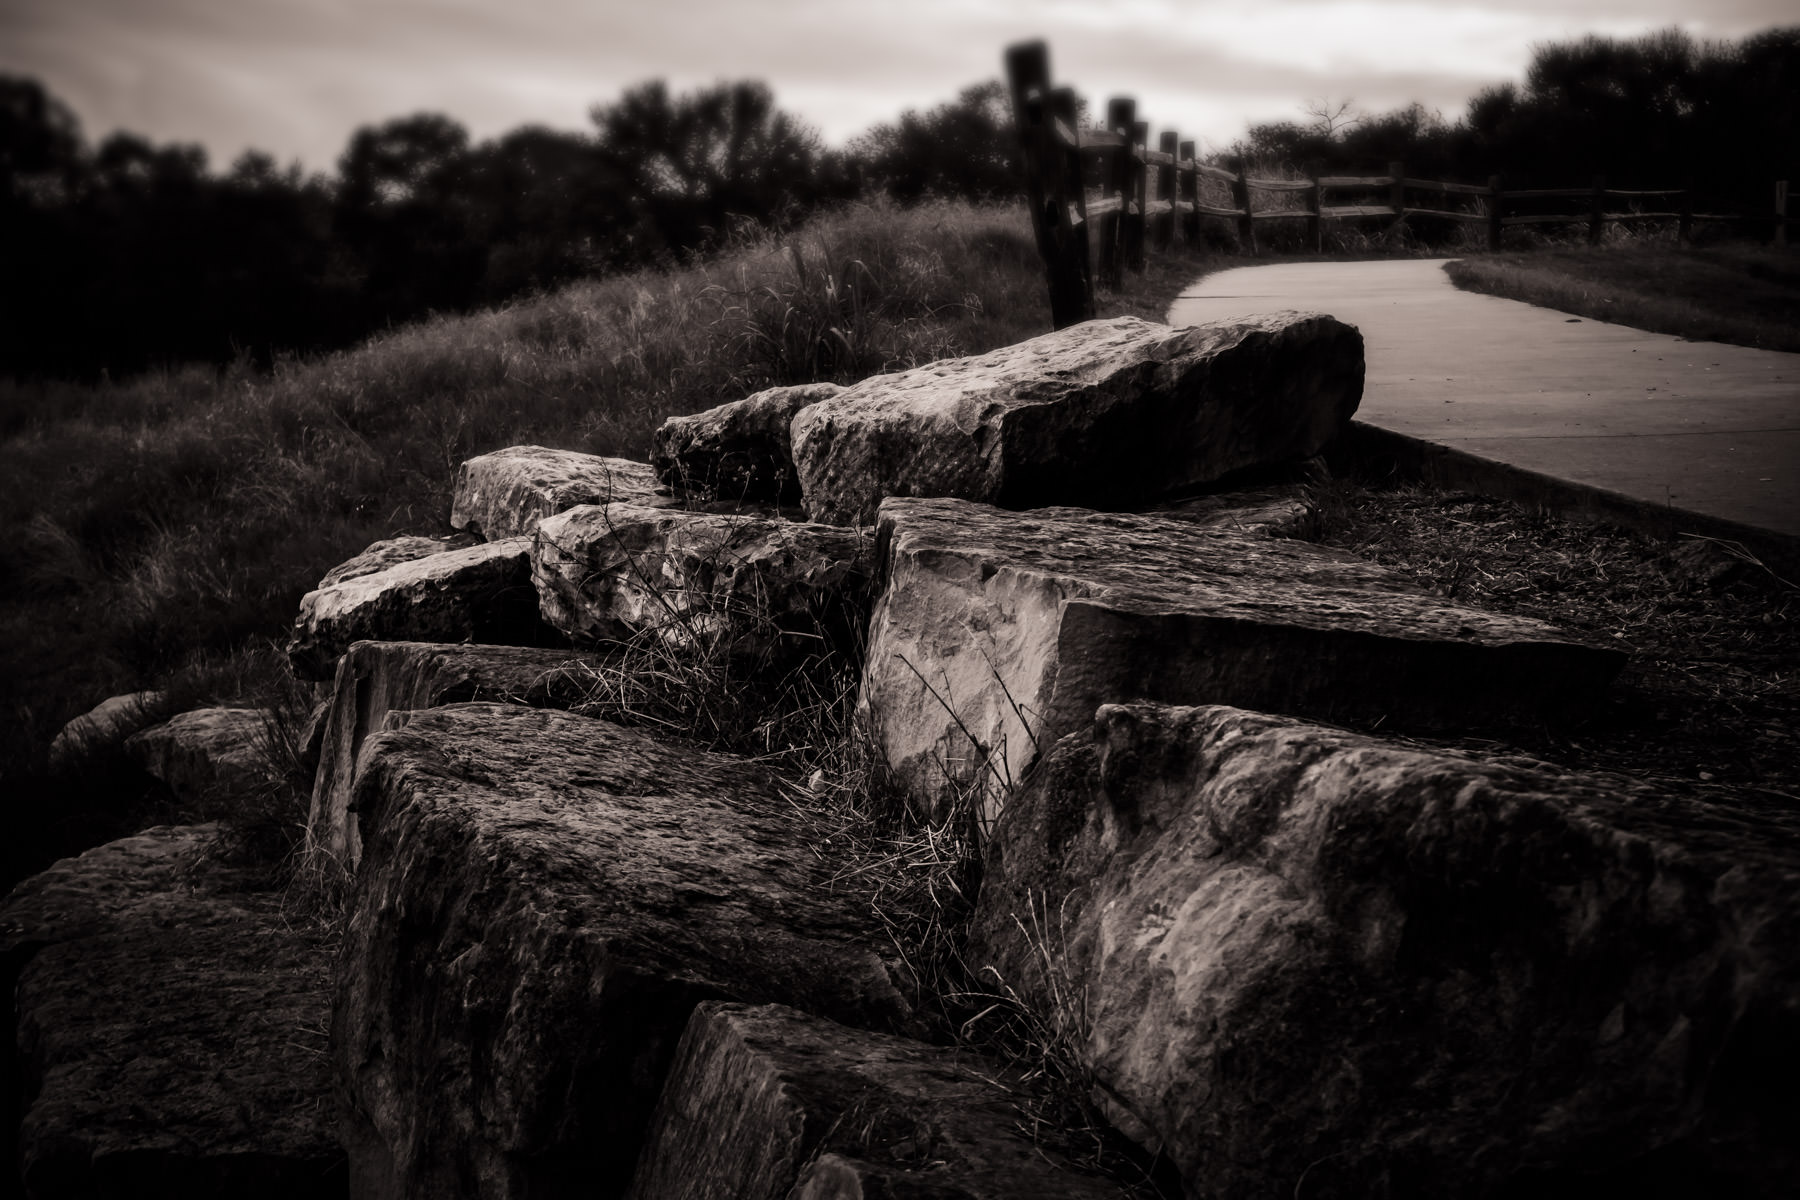 Rocks along a path at the Arbor Hills Nature Preserve in Plano, Texas.